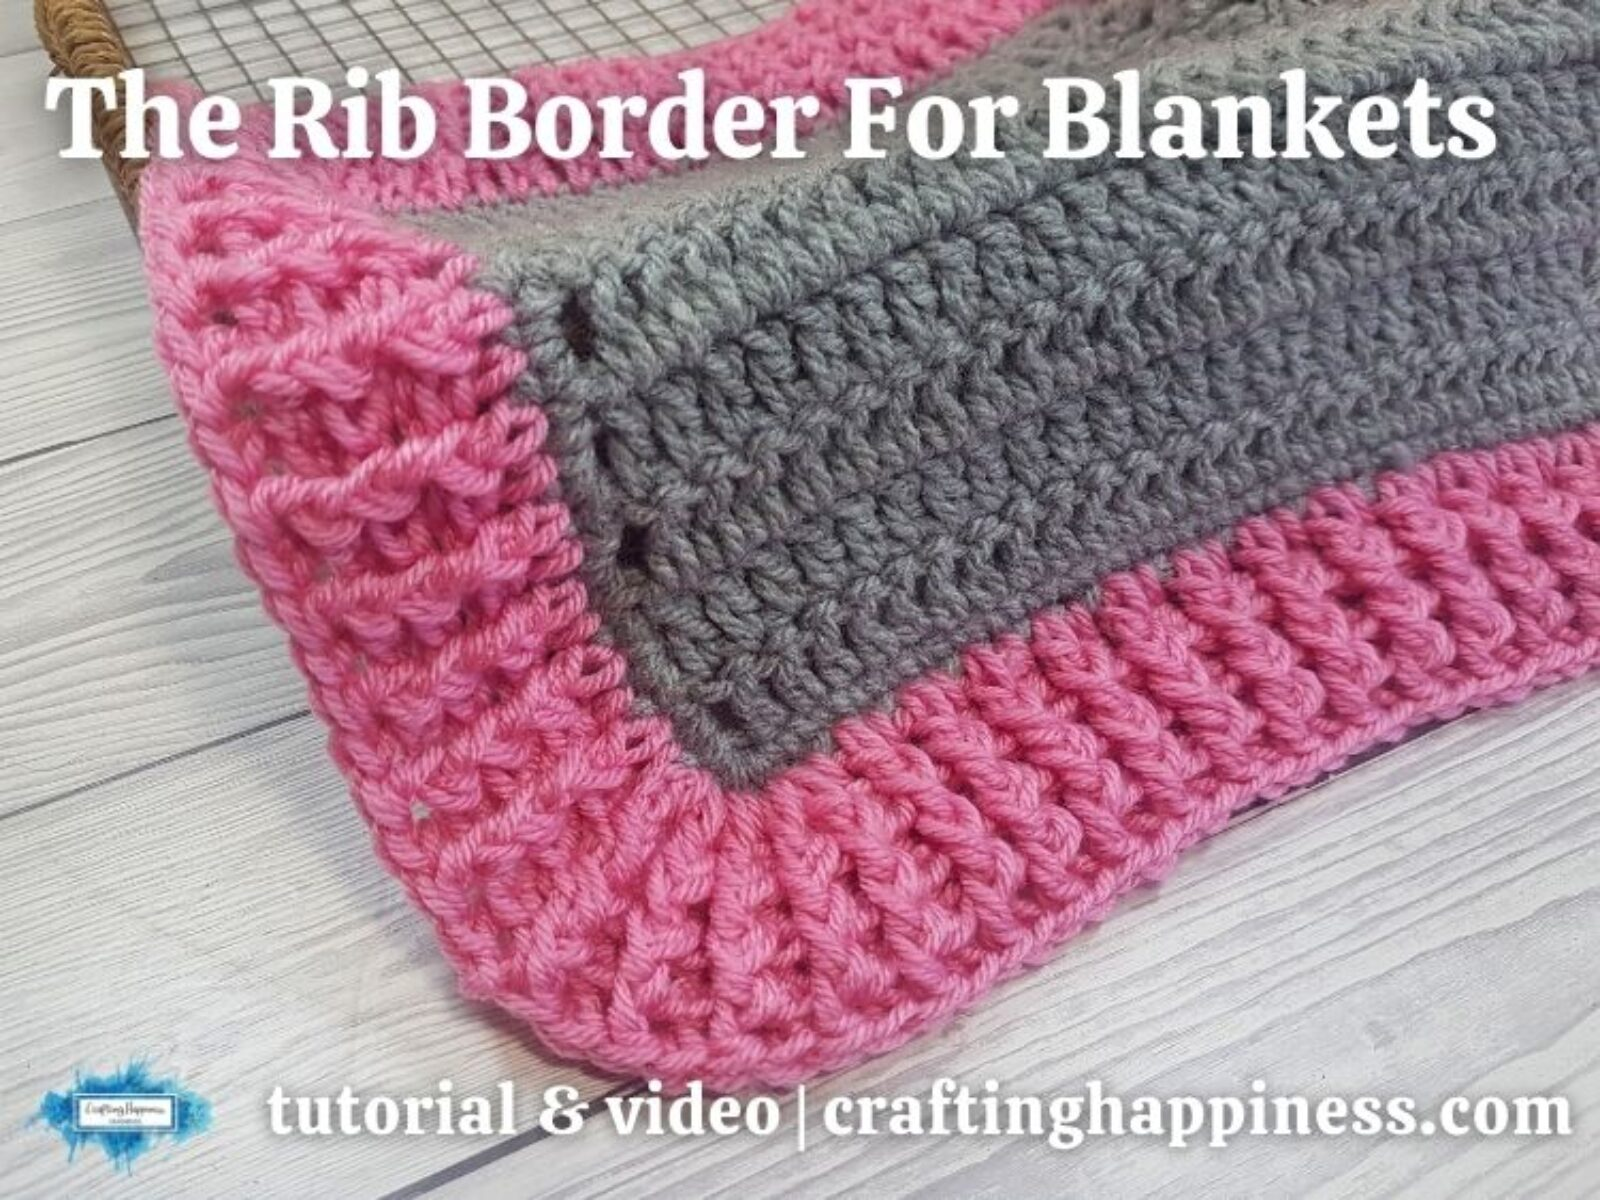 FB BLOG POSTER - Crochet Rib Border